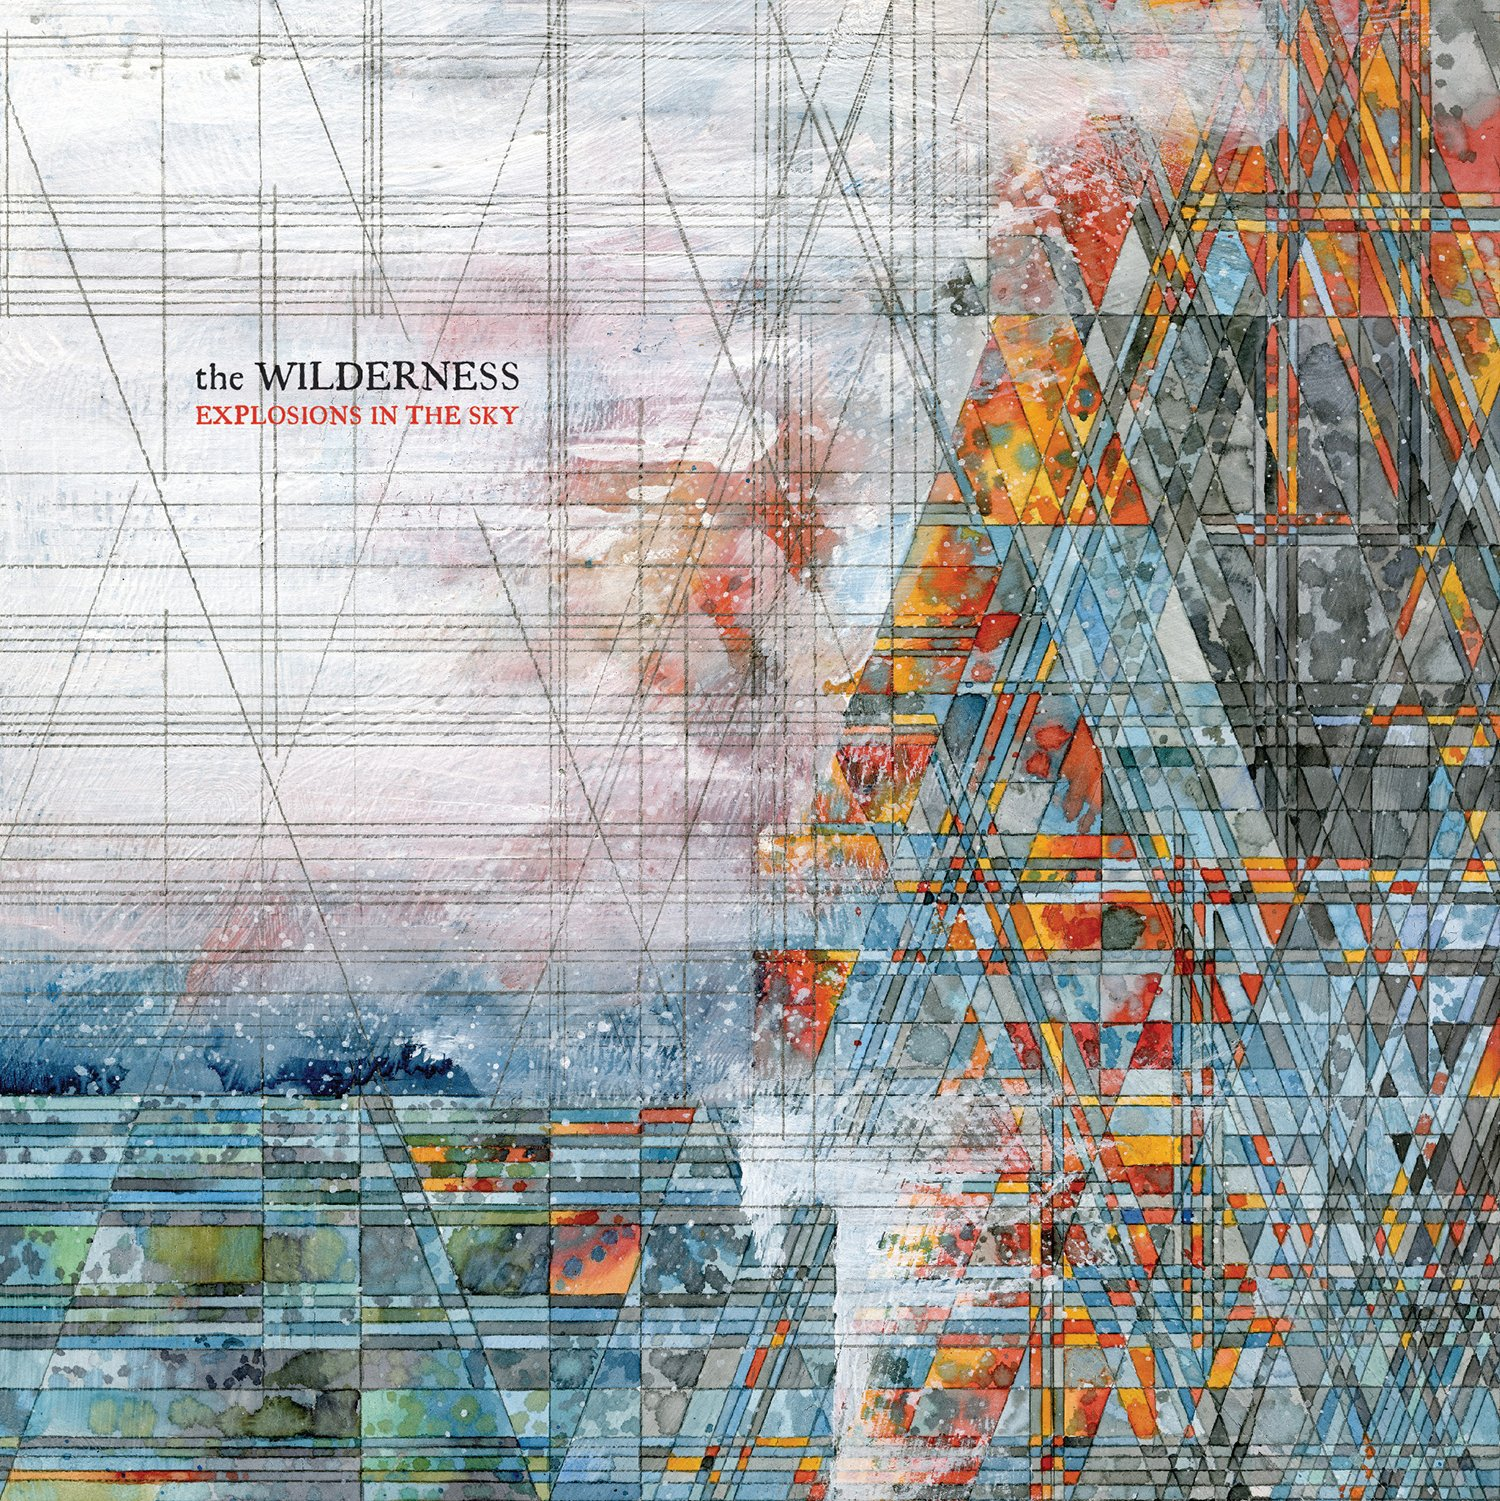 Vinilo : Explosions in the Sky - The Wilderness (2 Disc)